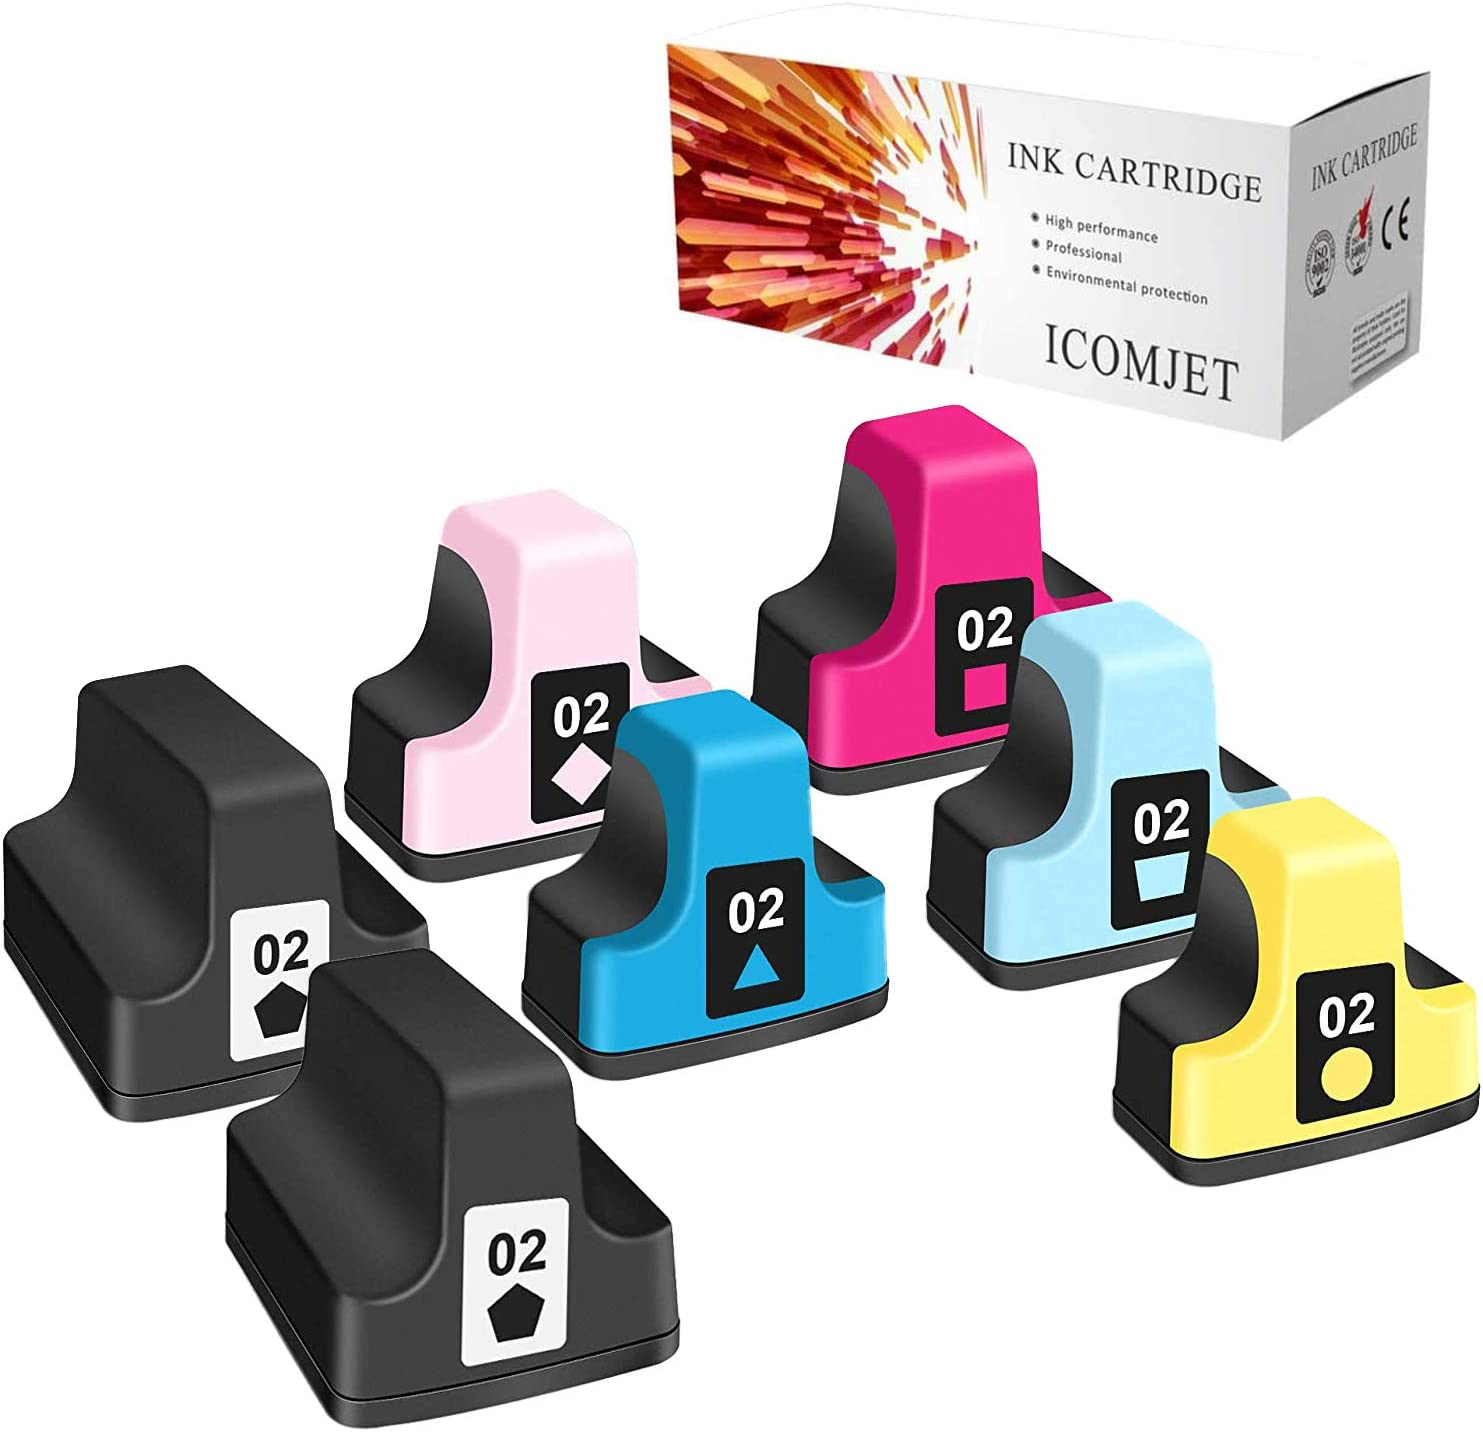 ICOMJET 7 Pack HP02 Compatible Ink Cartridge Replacement for HP 02 Use for HP Photosmart C5180 C7280 C6280 C6180 D7360 D7460 8250 C7200 Printer